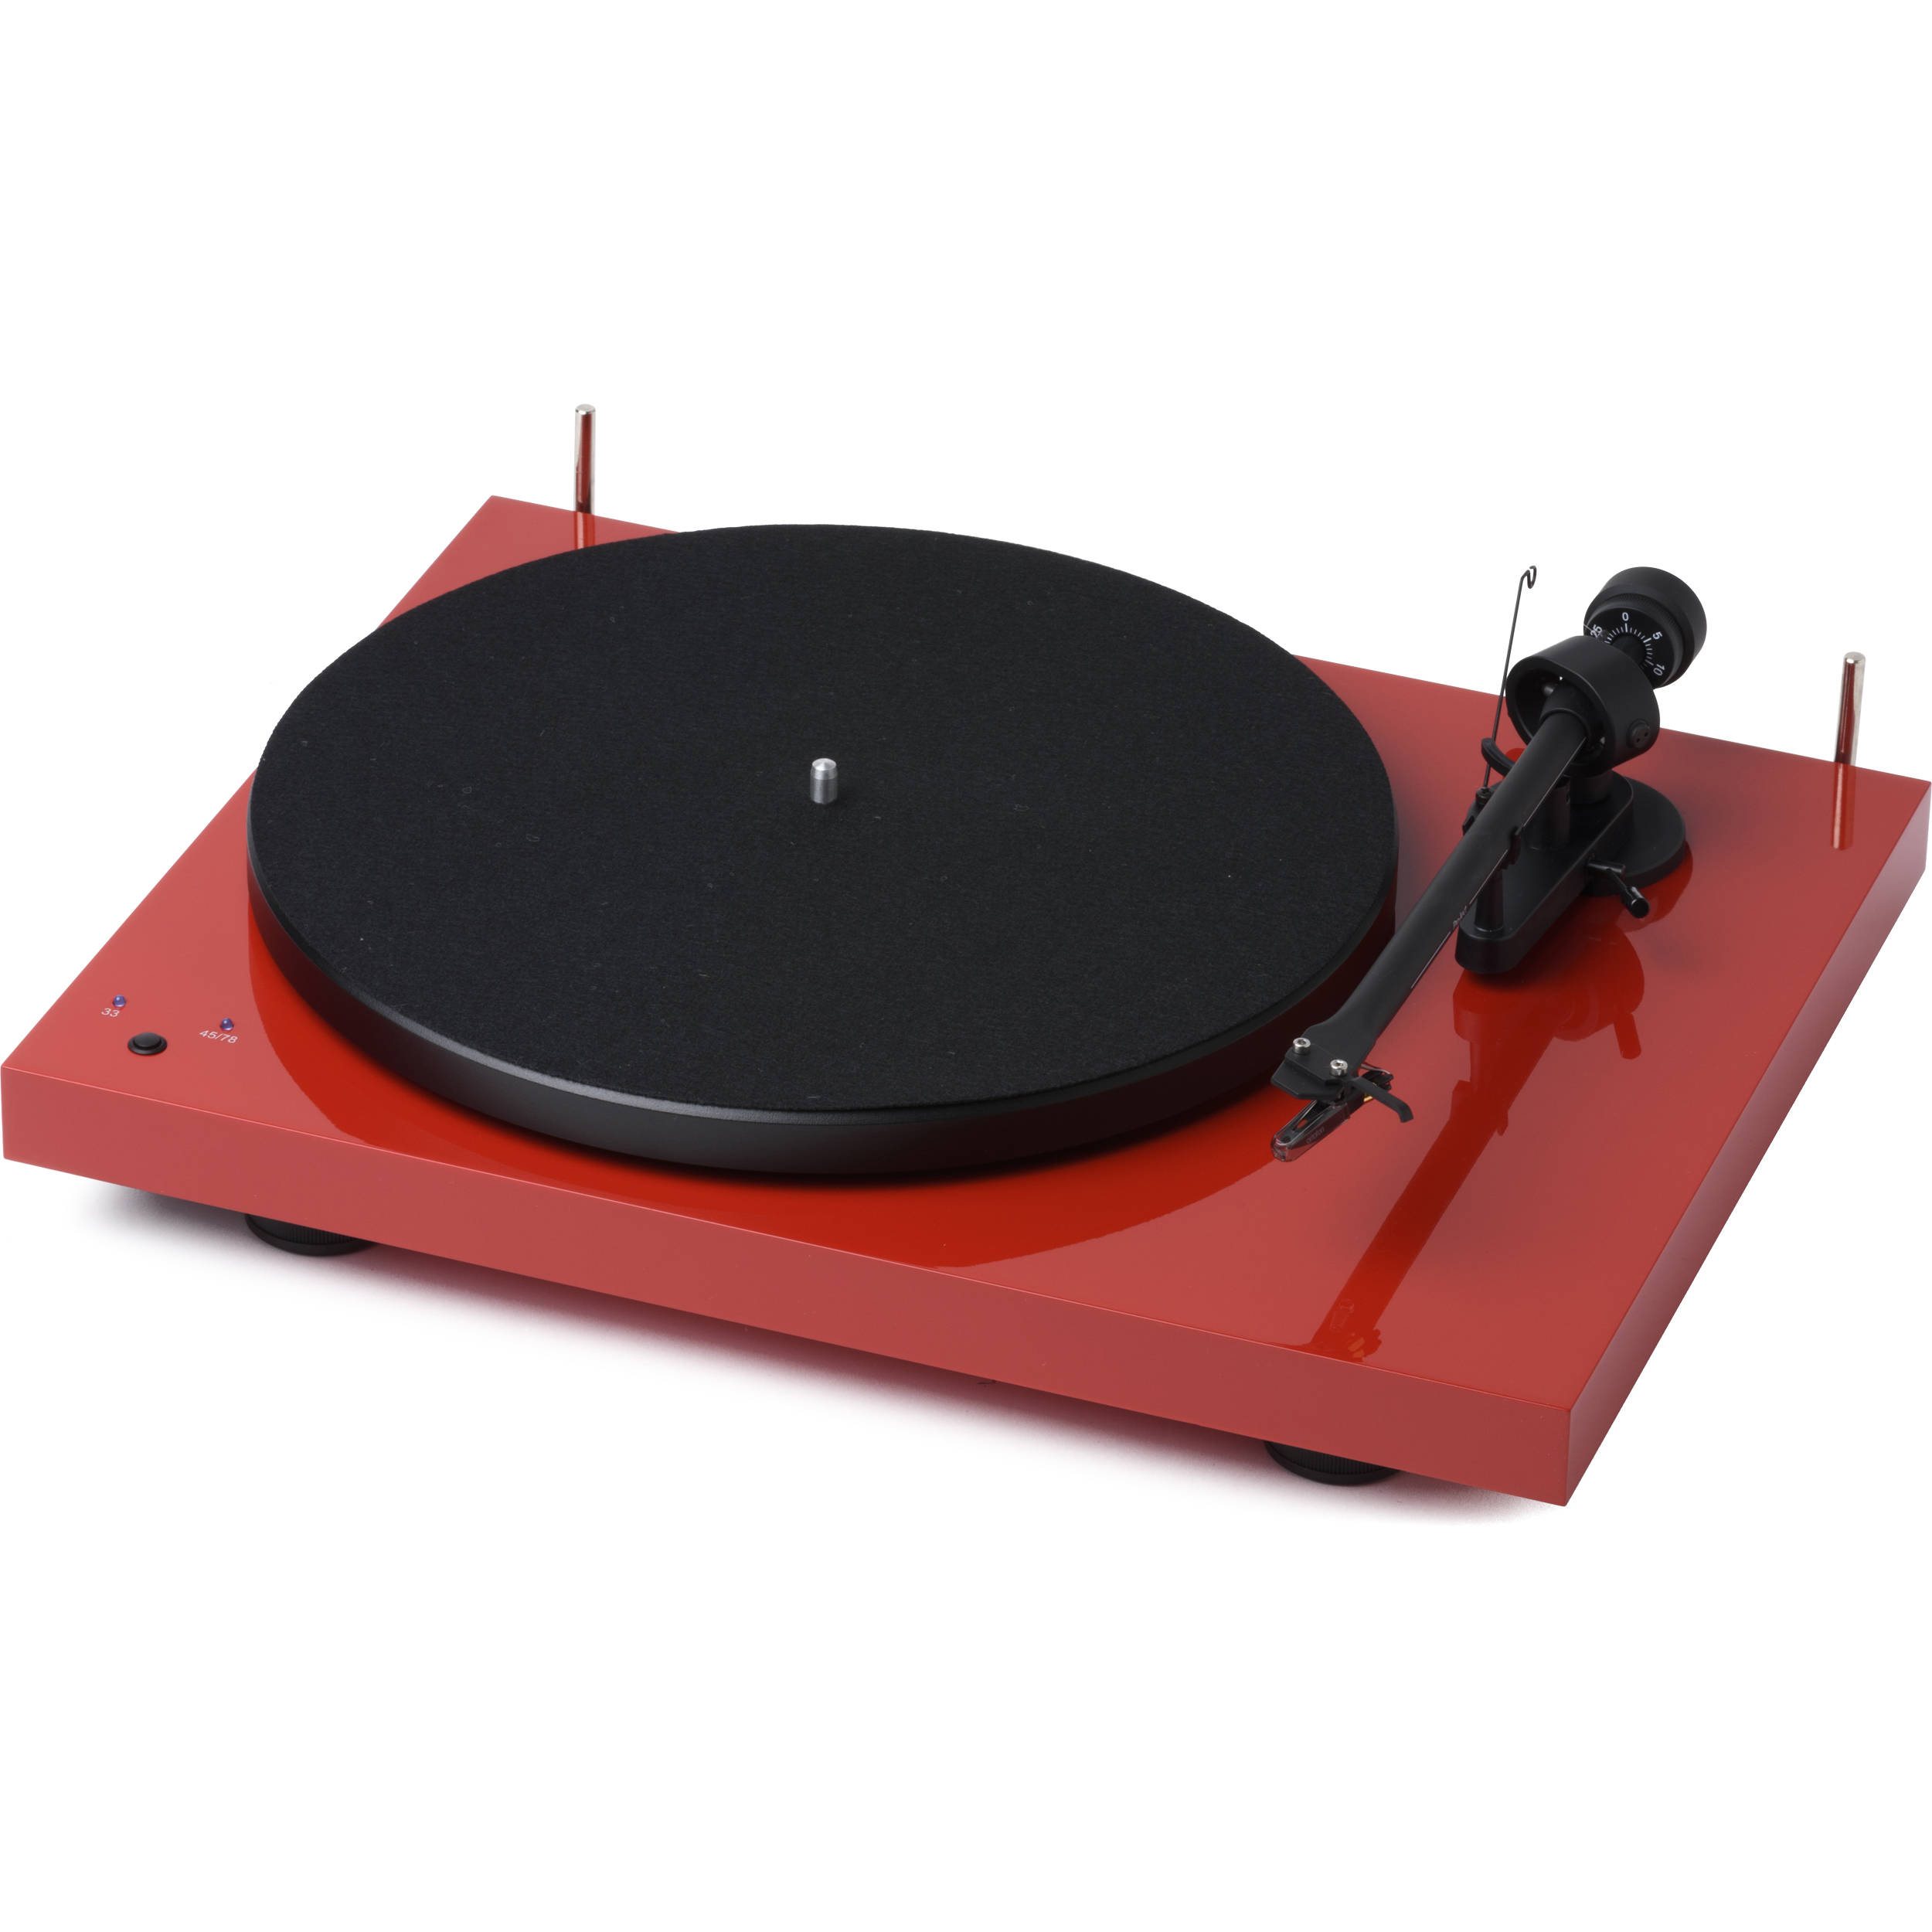 pro ject audio systems debut recordmaster turntable 844682007120. Black Bedroom Furniture Sets. Home Design Ideas